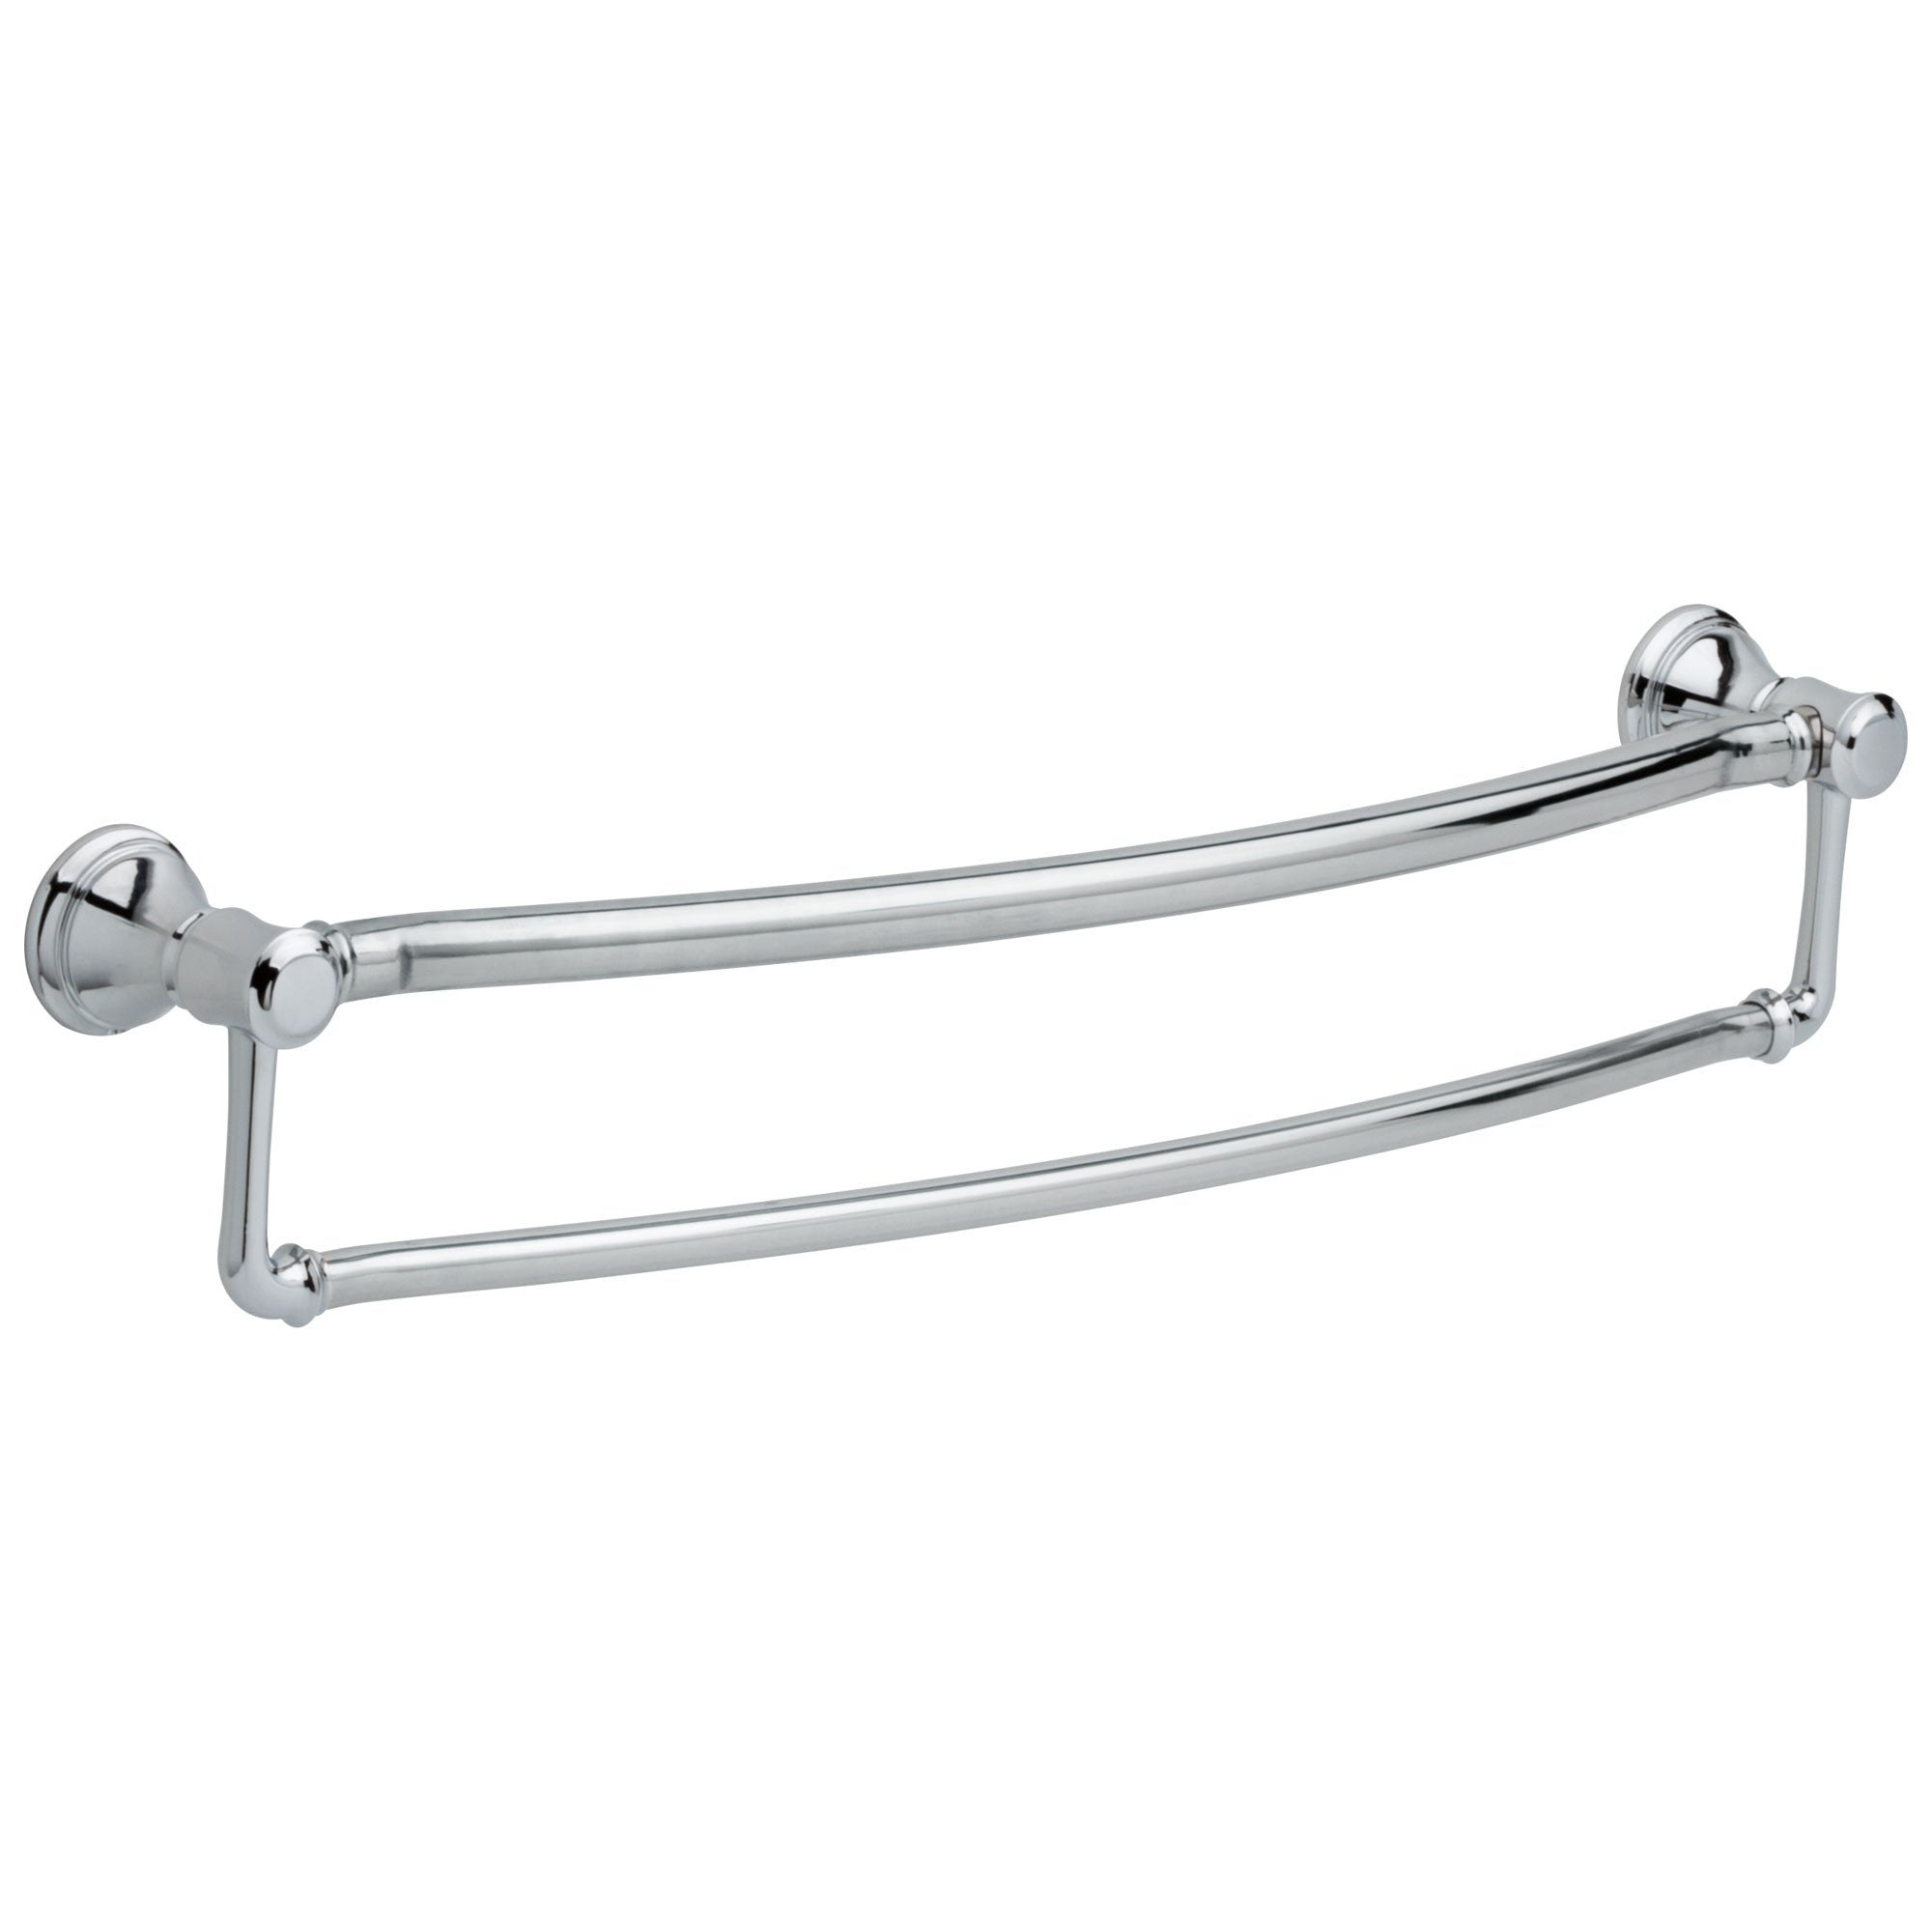 "Delta Bath Safety Collection Chrome Finish Traditional Style Dual 24"" Towel Bar with Assist Grab Bar D41319"